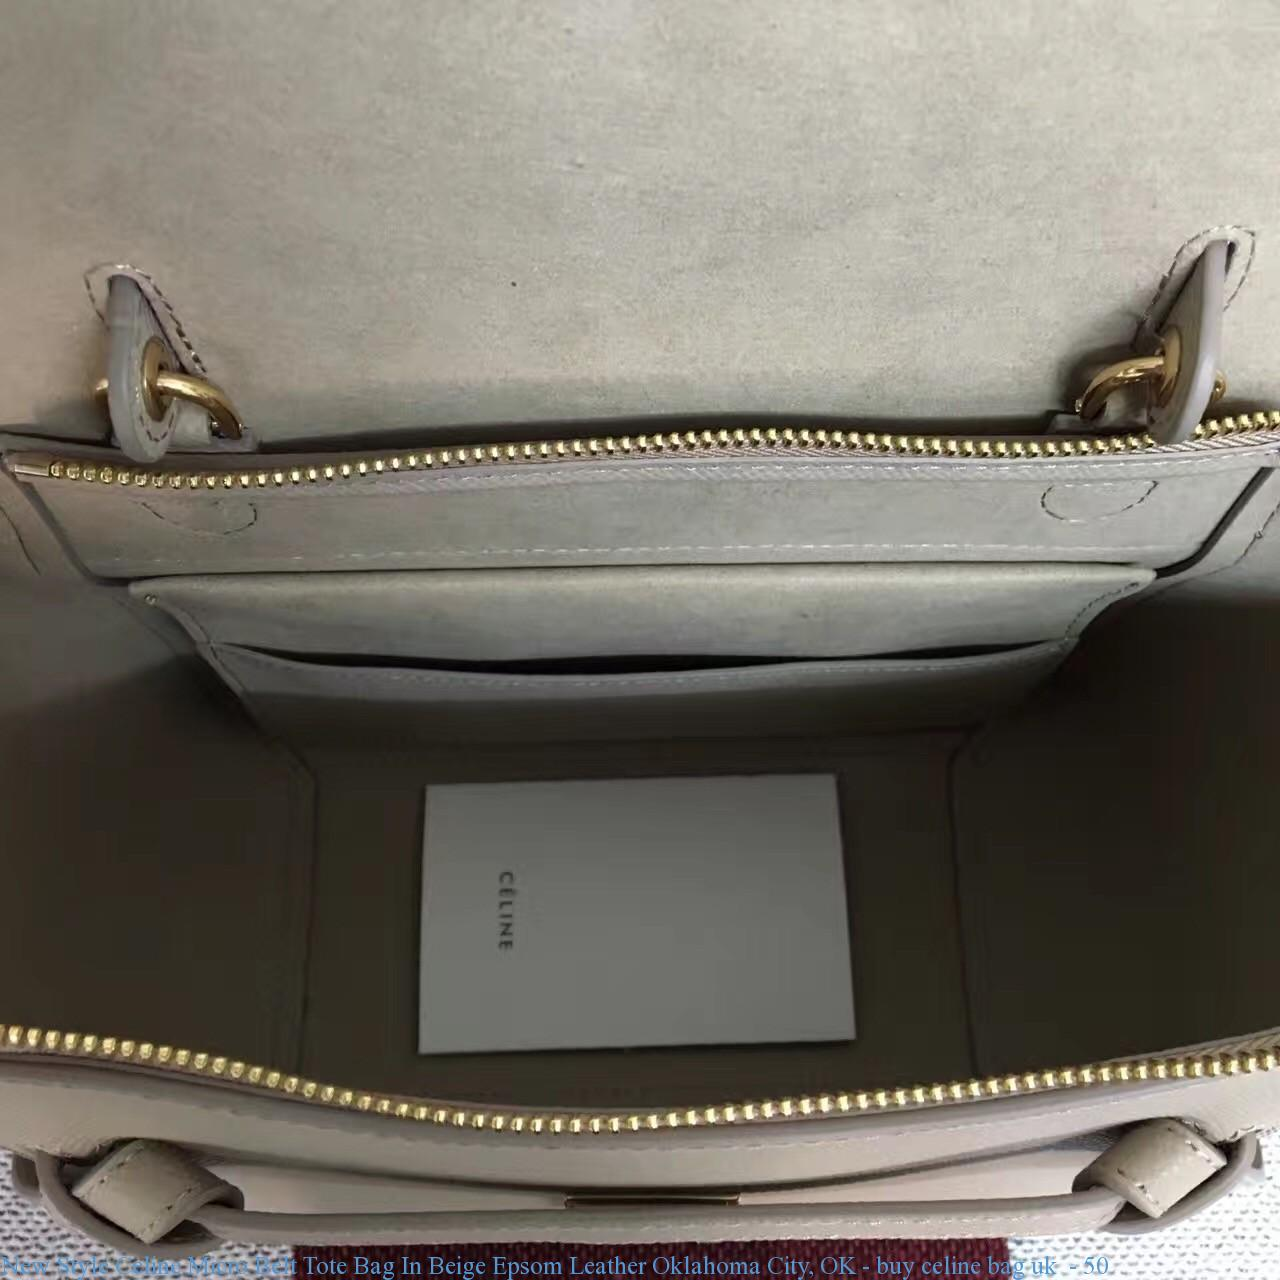 New Style Celine Micro Belt Tote Bag In Beige Epsom Leather Oklahoma City Ok Buy Celine Bag Uk 50 Buy Cheap Celine Replica Handbags Celine Bags Outlet Store Celine Bags